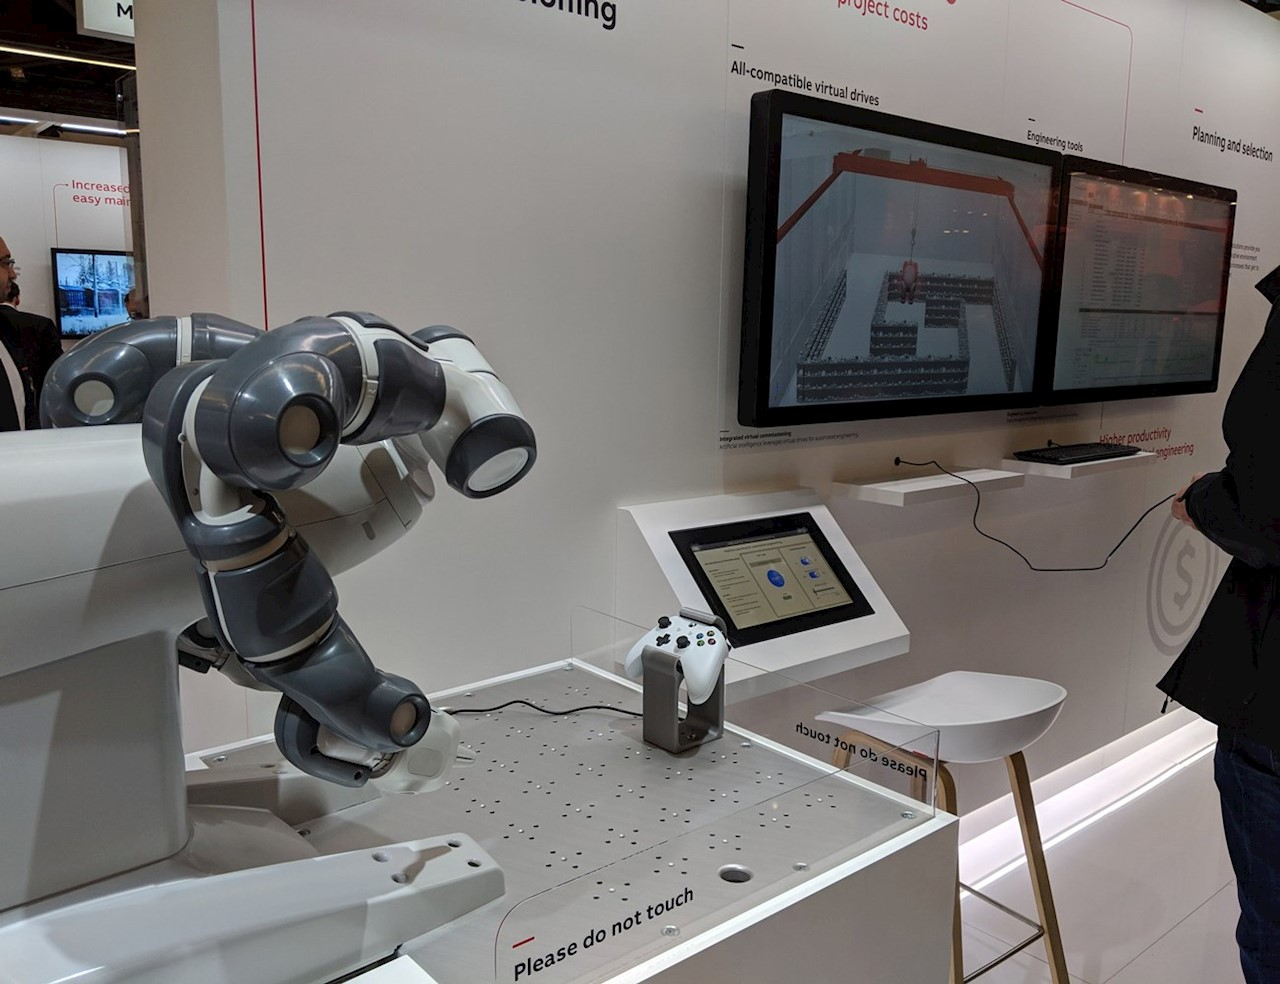 ABB's YuMi Robot ready to interact with attendees of SPS 2018